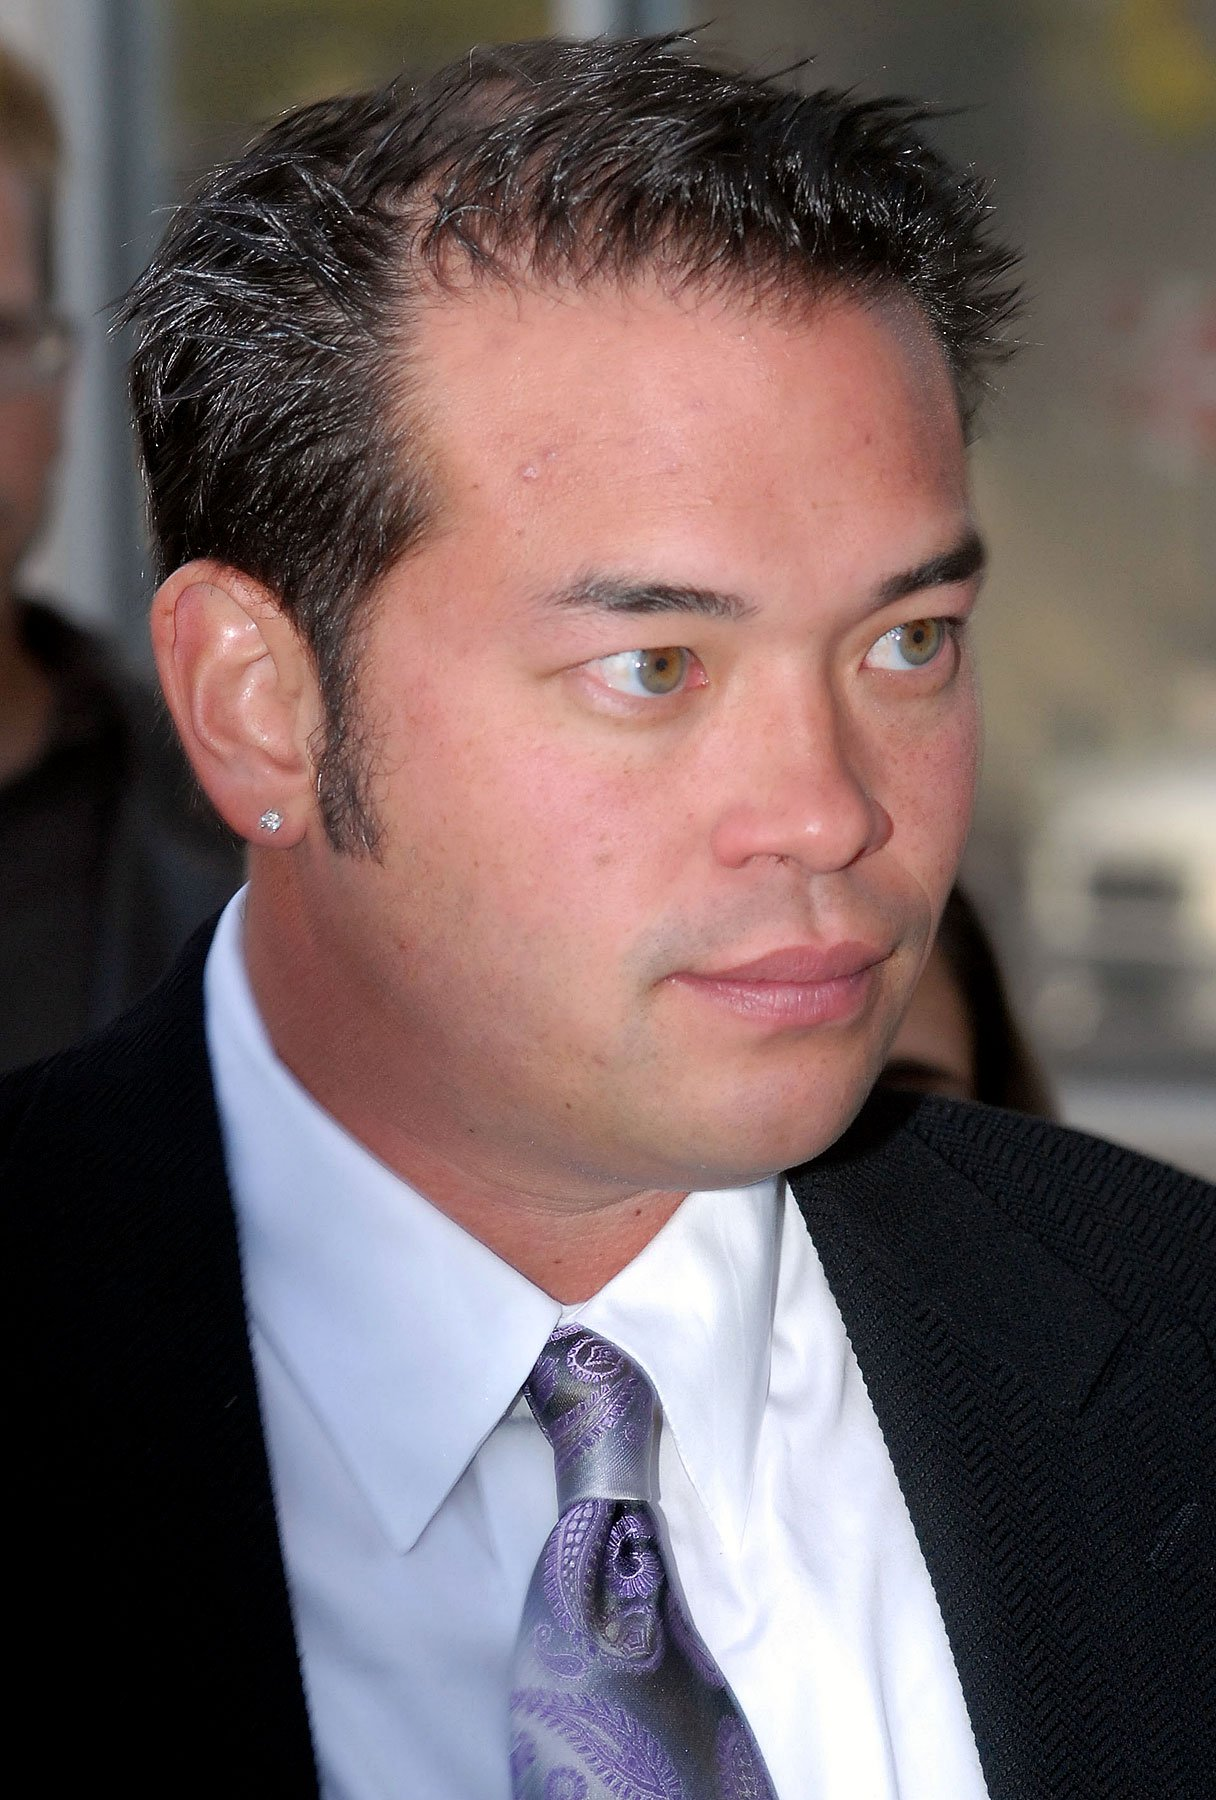 Jon Gosselin Wants to Make Things Right With Hailey Glassman and Kate